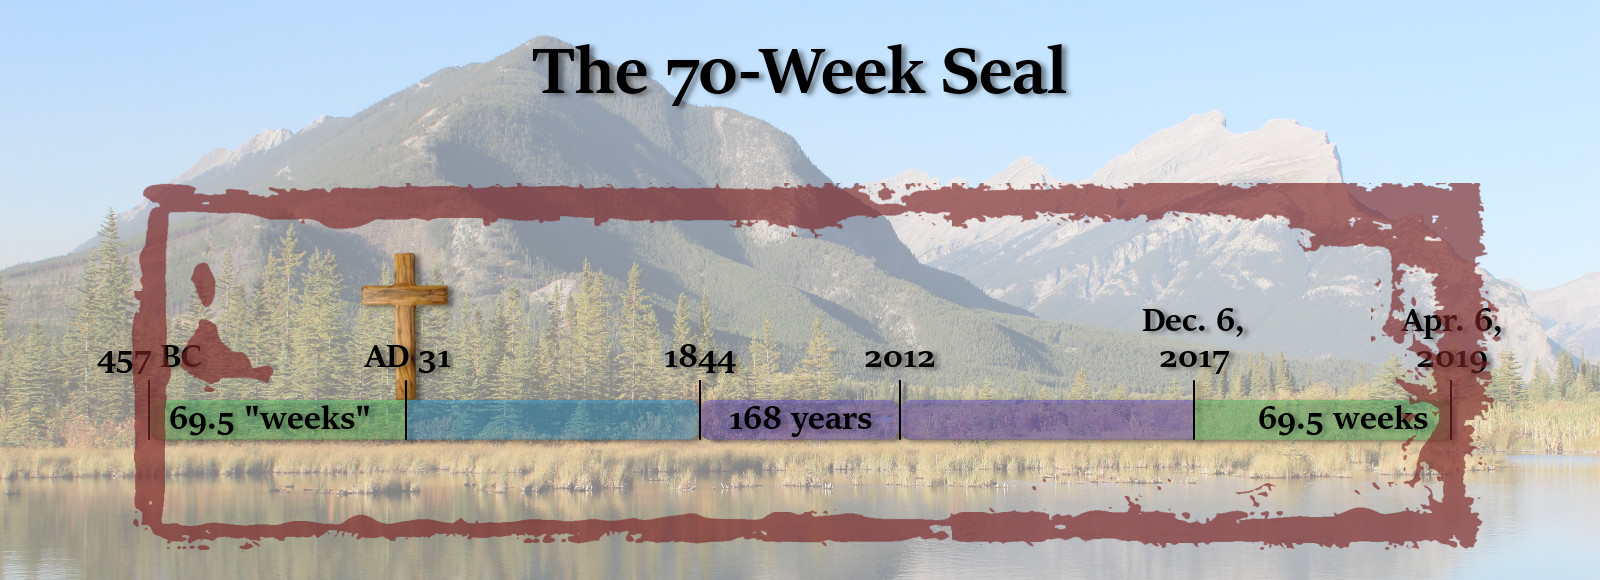 The 70-Week Seal